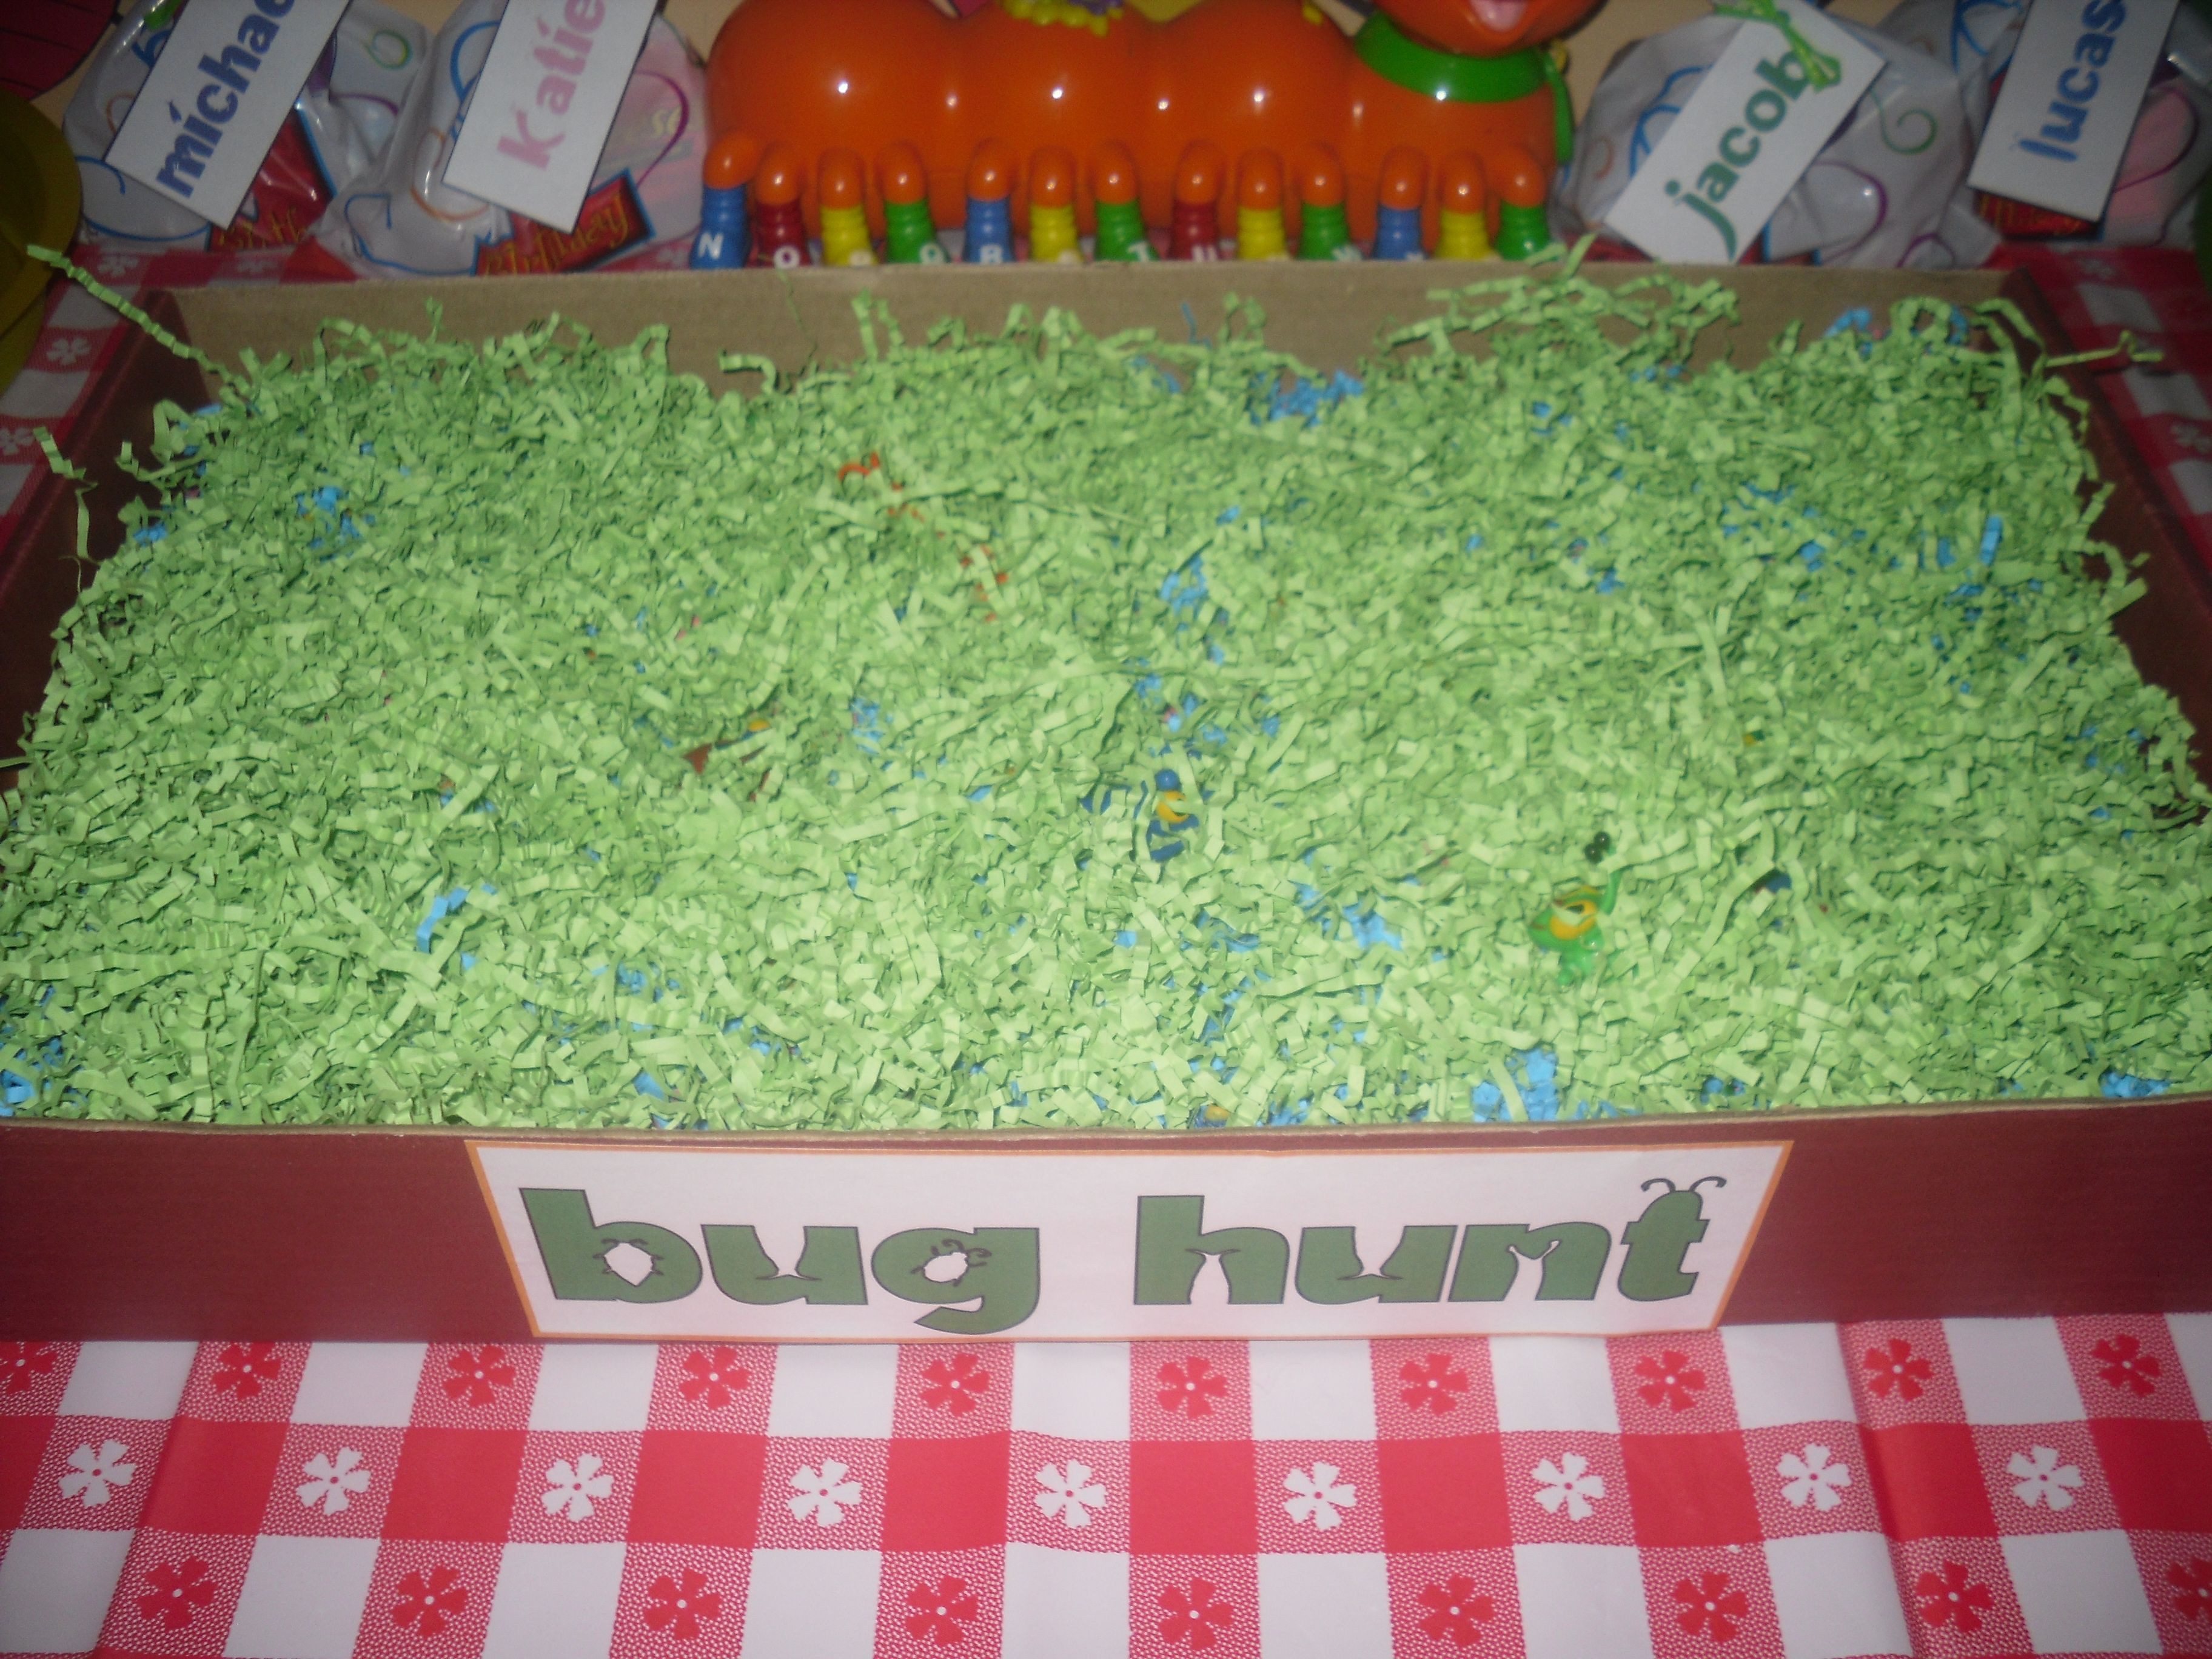 Kindergarten Easter Party Ideas  Dig for treasures in Easter grass or shredded paper Use